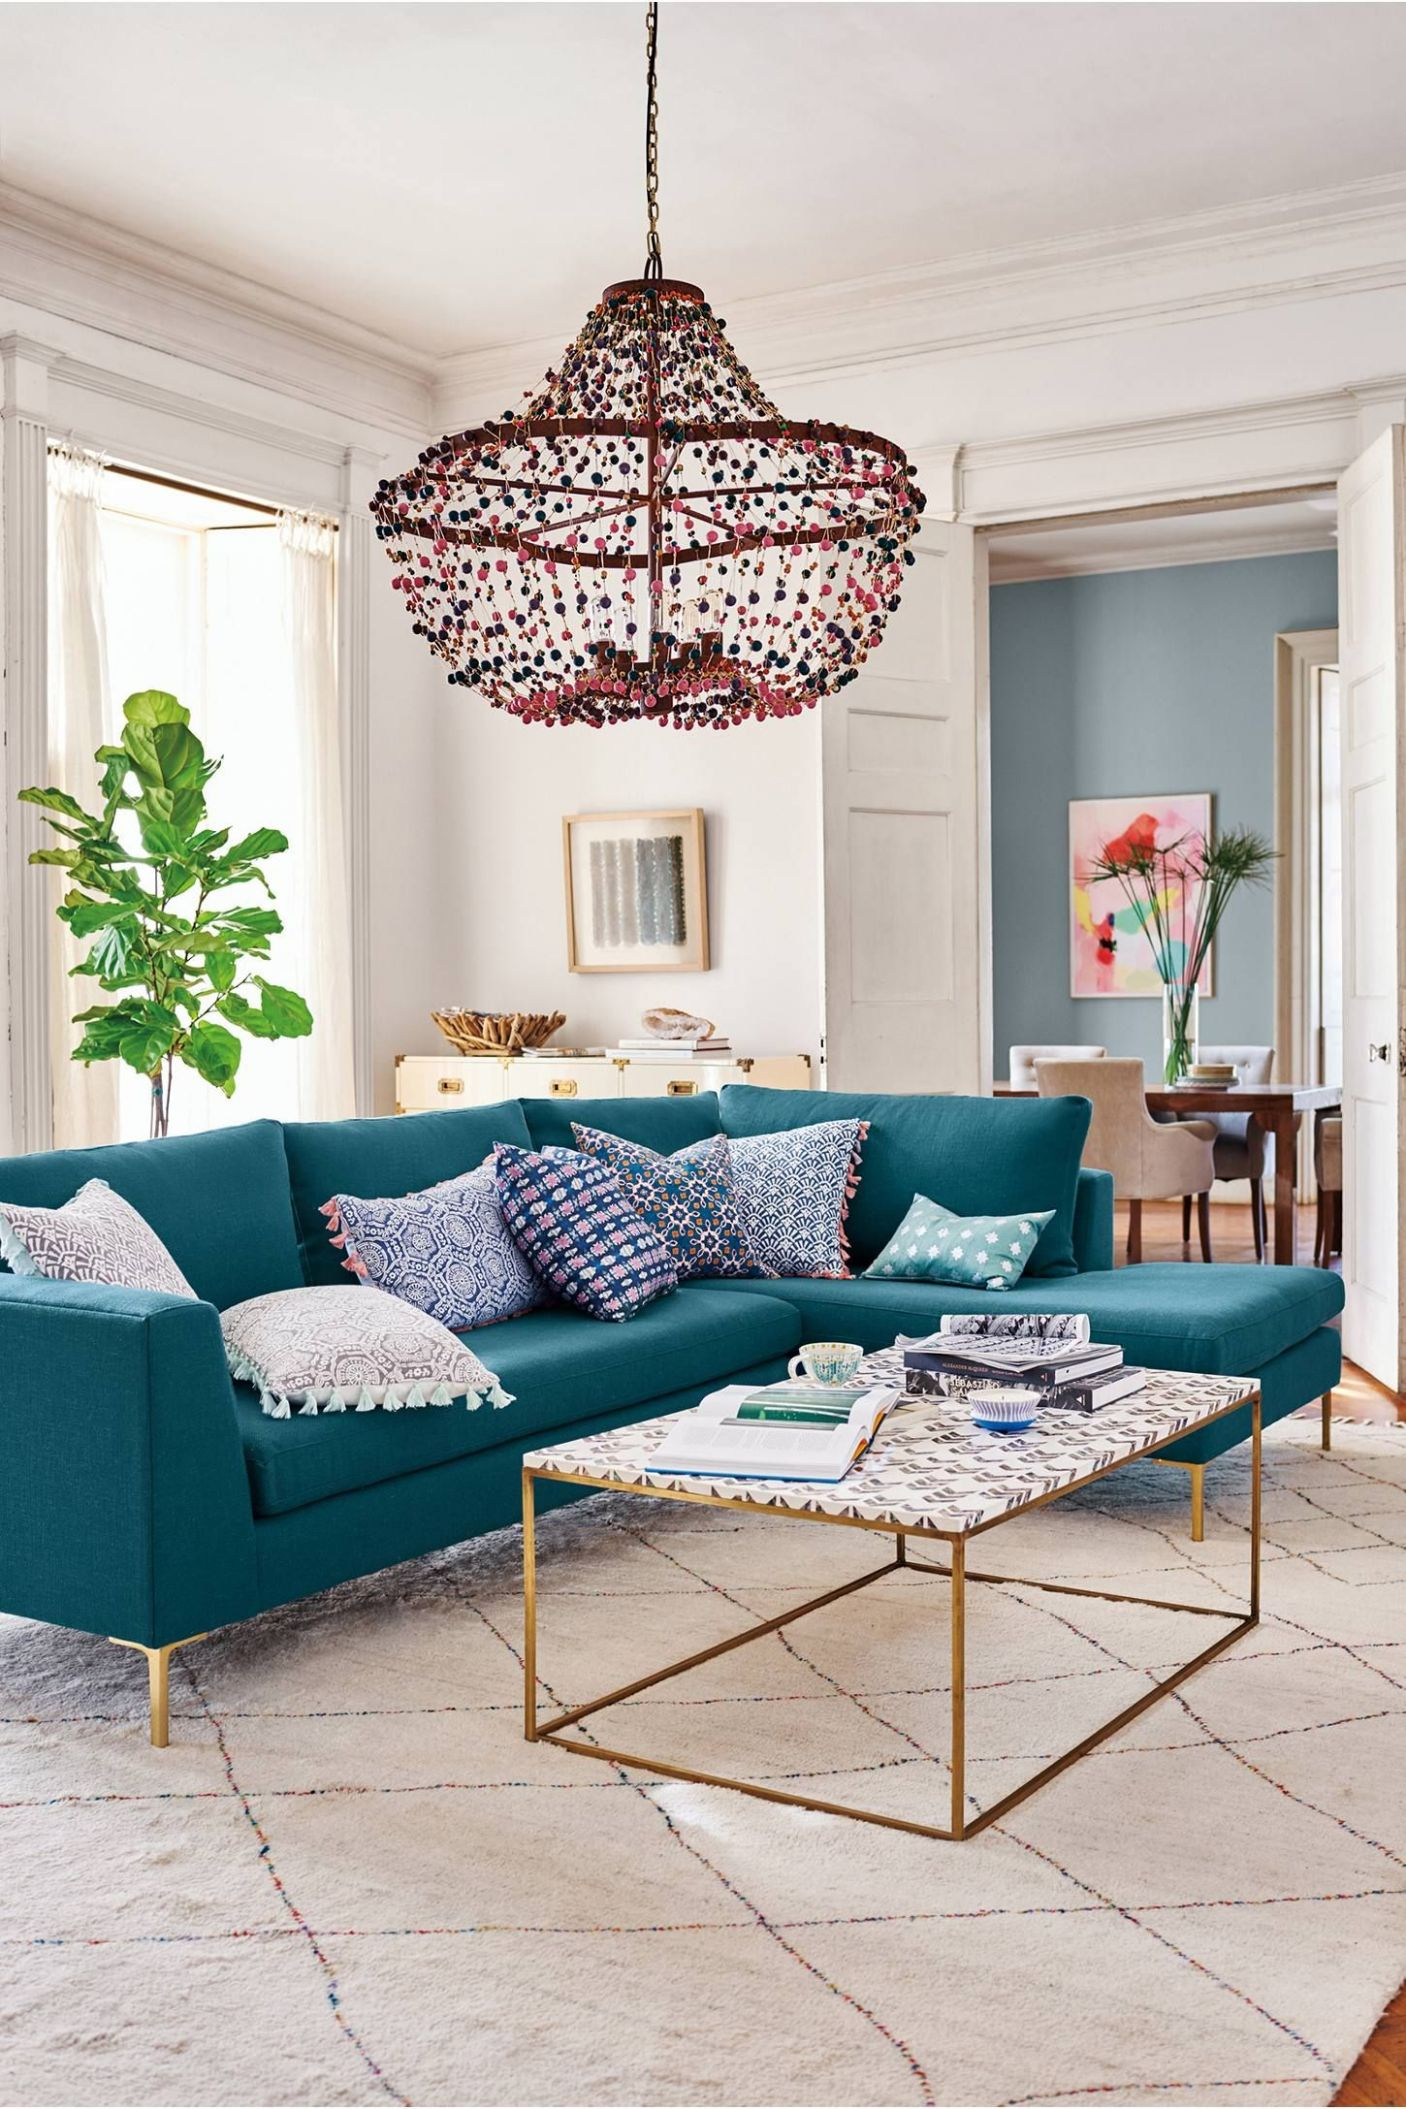 The Inspired Home | Living room colors, Living room designs ..